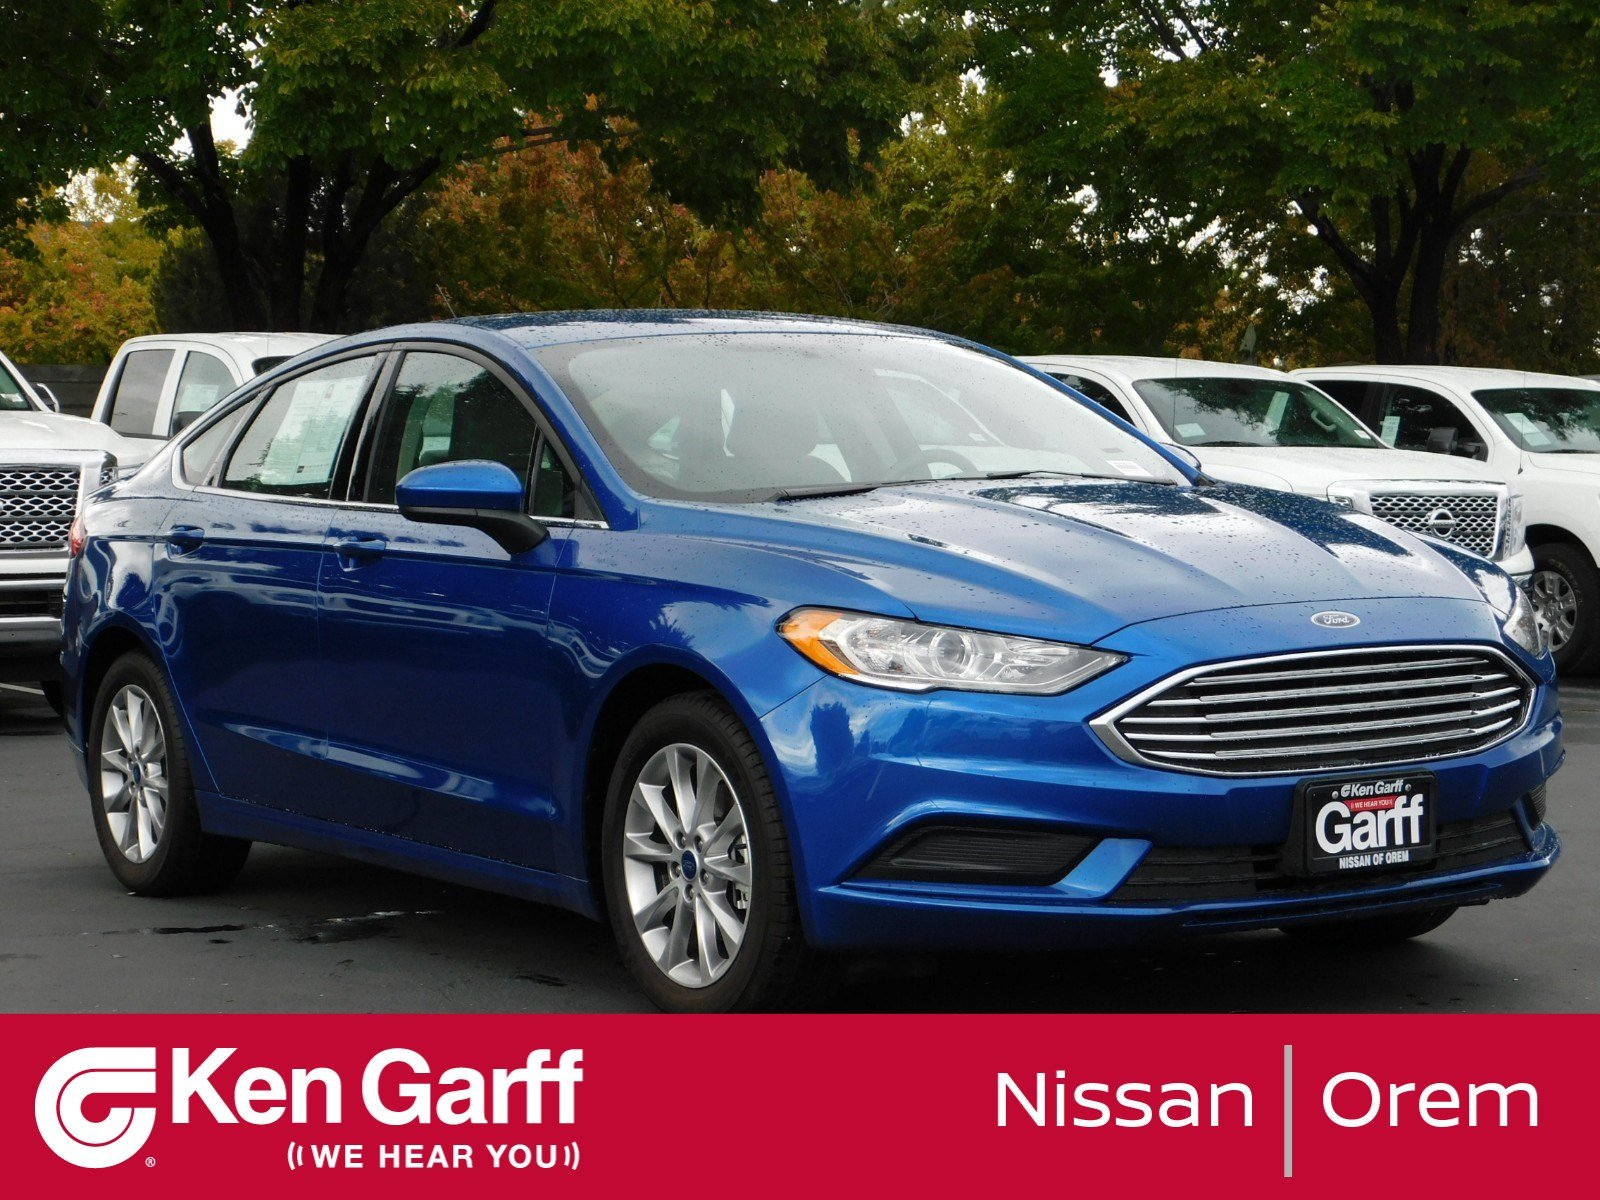 Pre Owned 2017 Ford Fusion SE 4dr Car in Orem 2NU5258